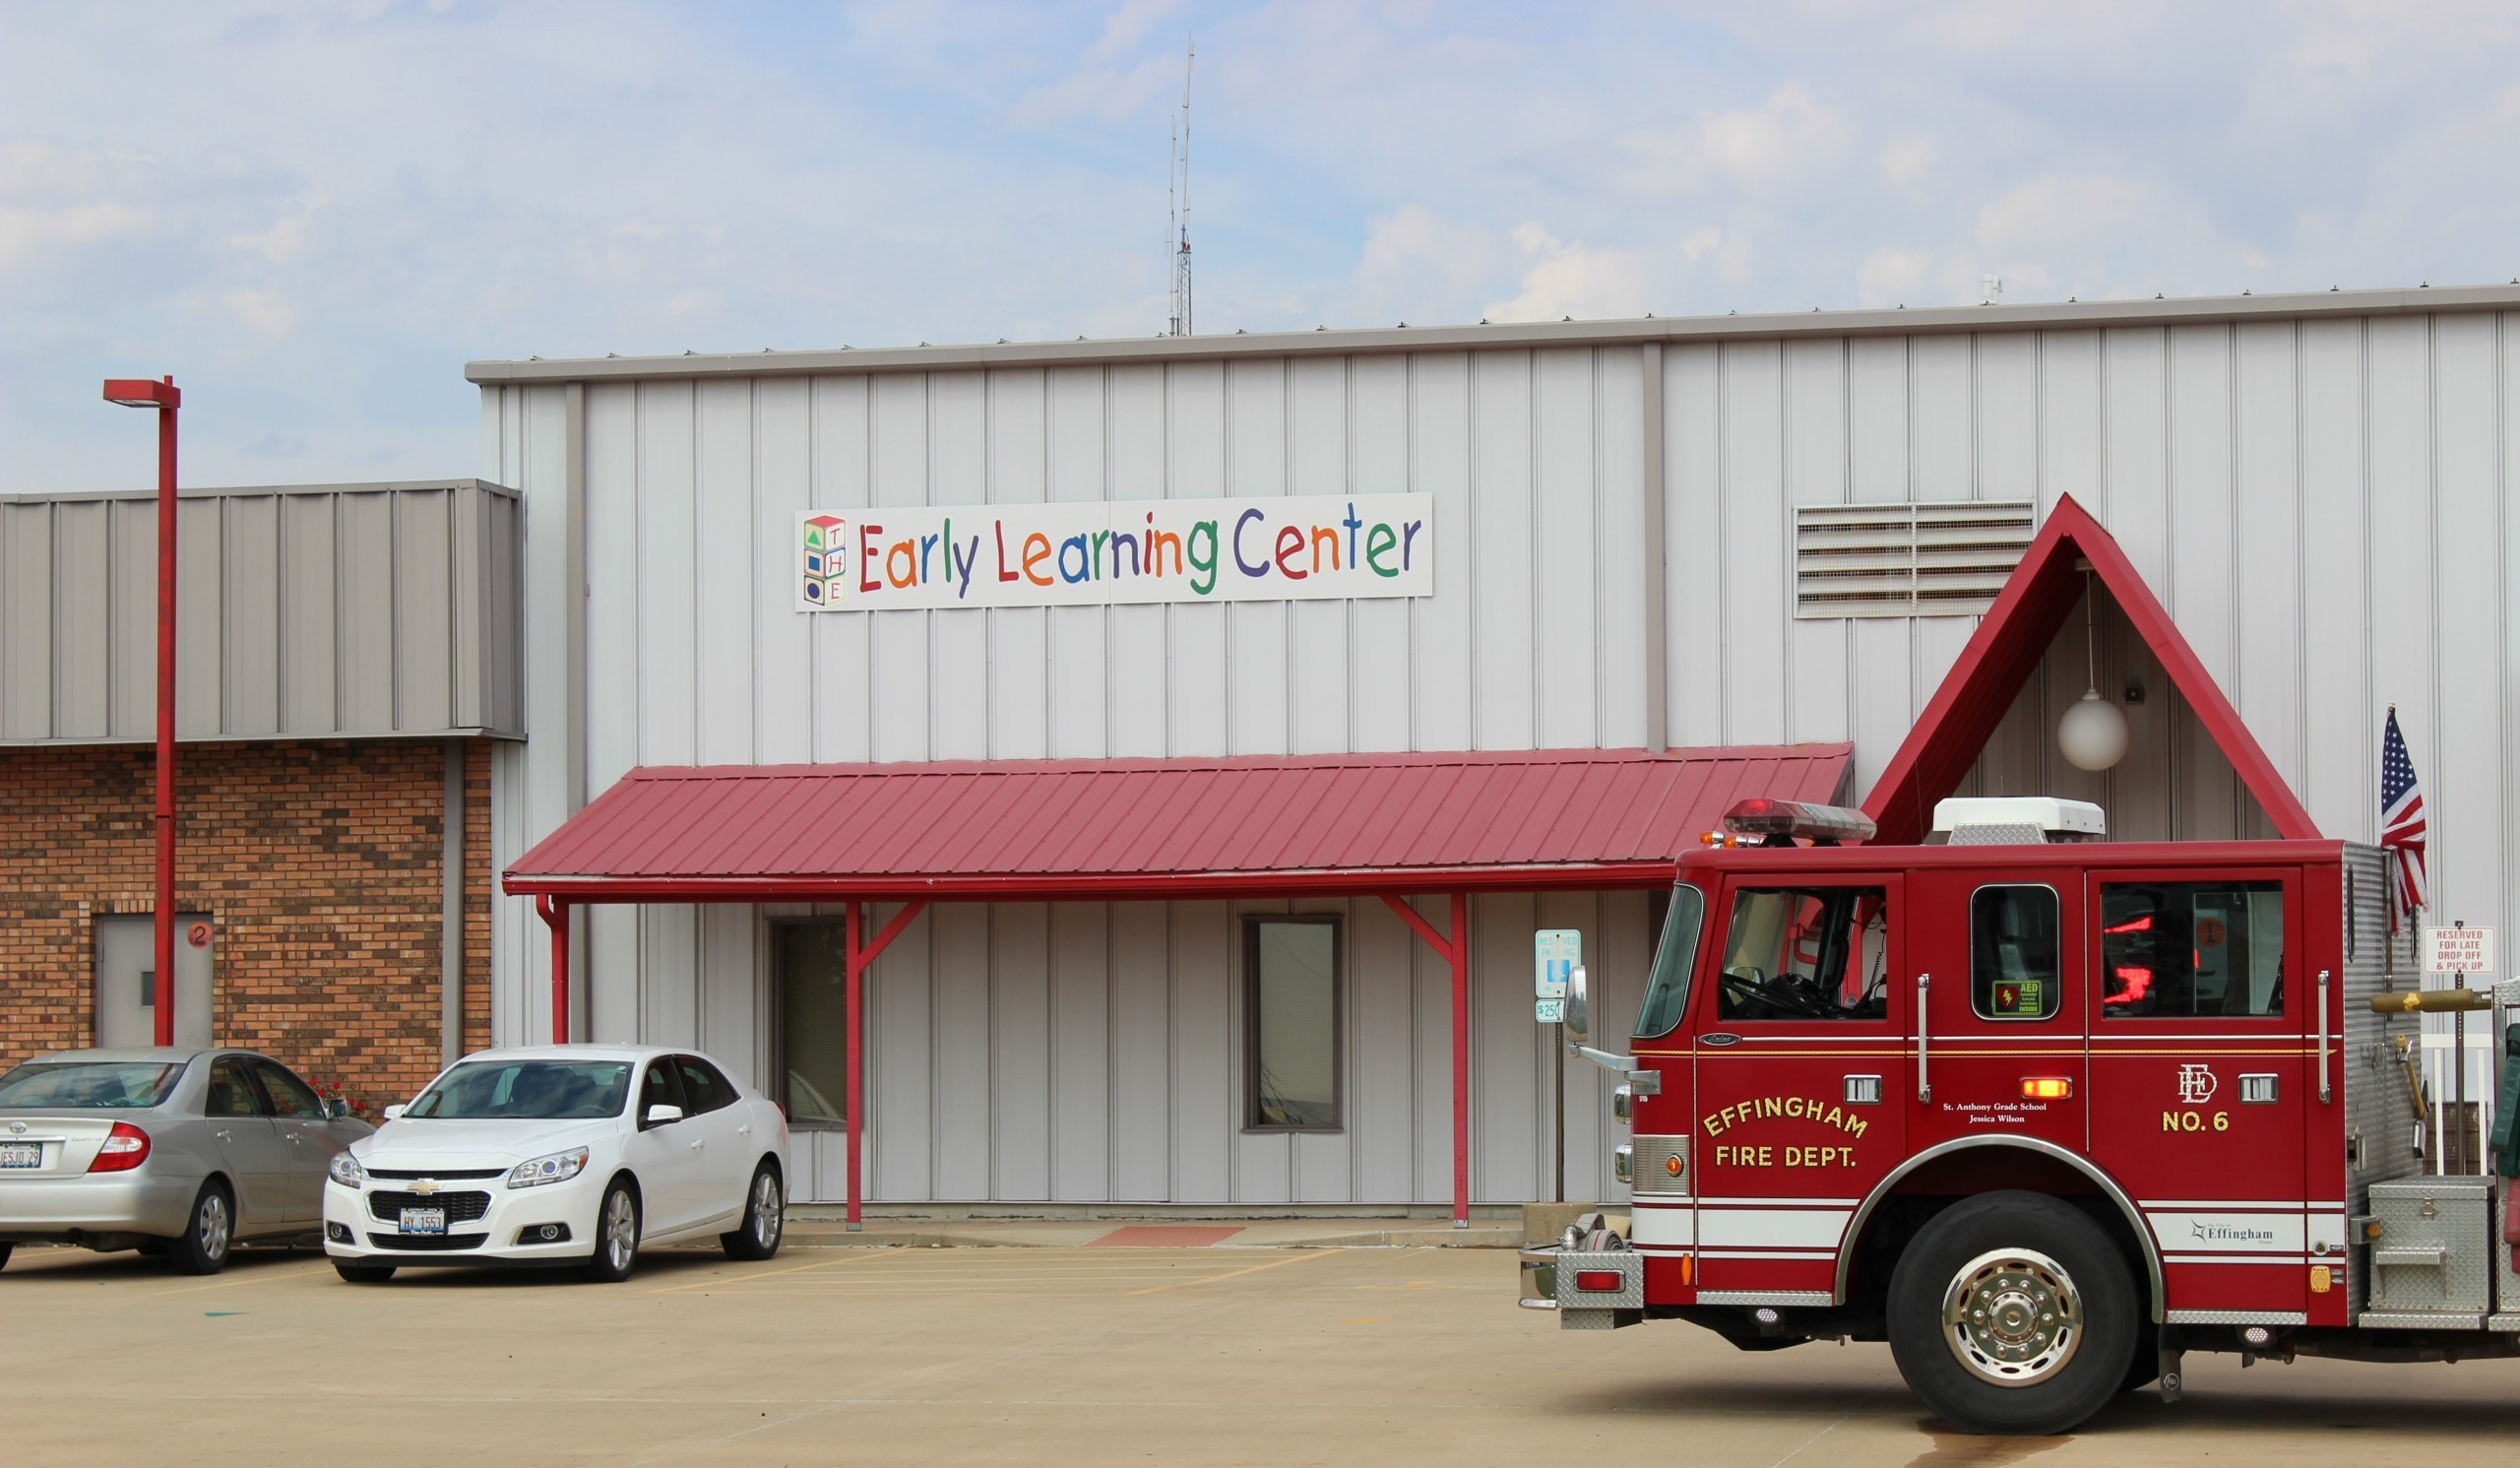 Early Learning Center in Effingham Resumes Day after Brief Evacuation